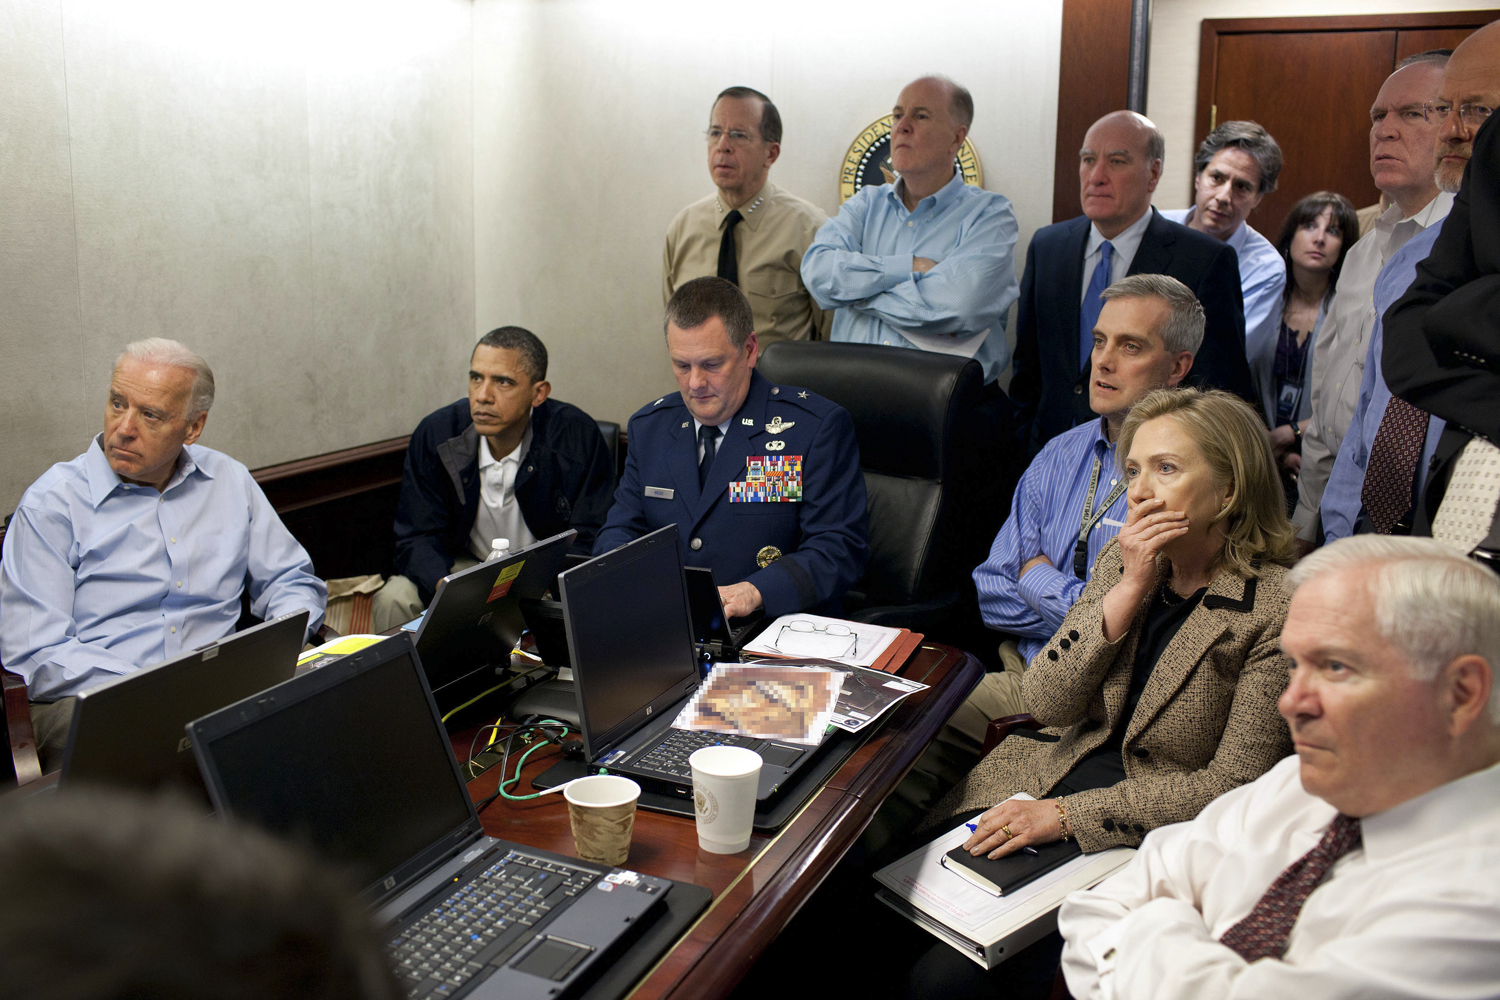 May 1, 2011. President Barack Obama and his national security team watch the Osama bin Laden mission in the White House Situation Room. Please note: a classified document seen in this photograph has been obscured.